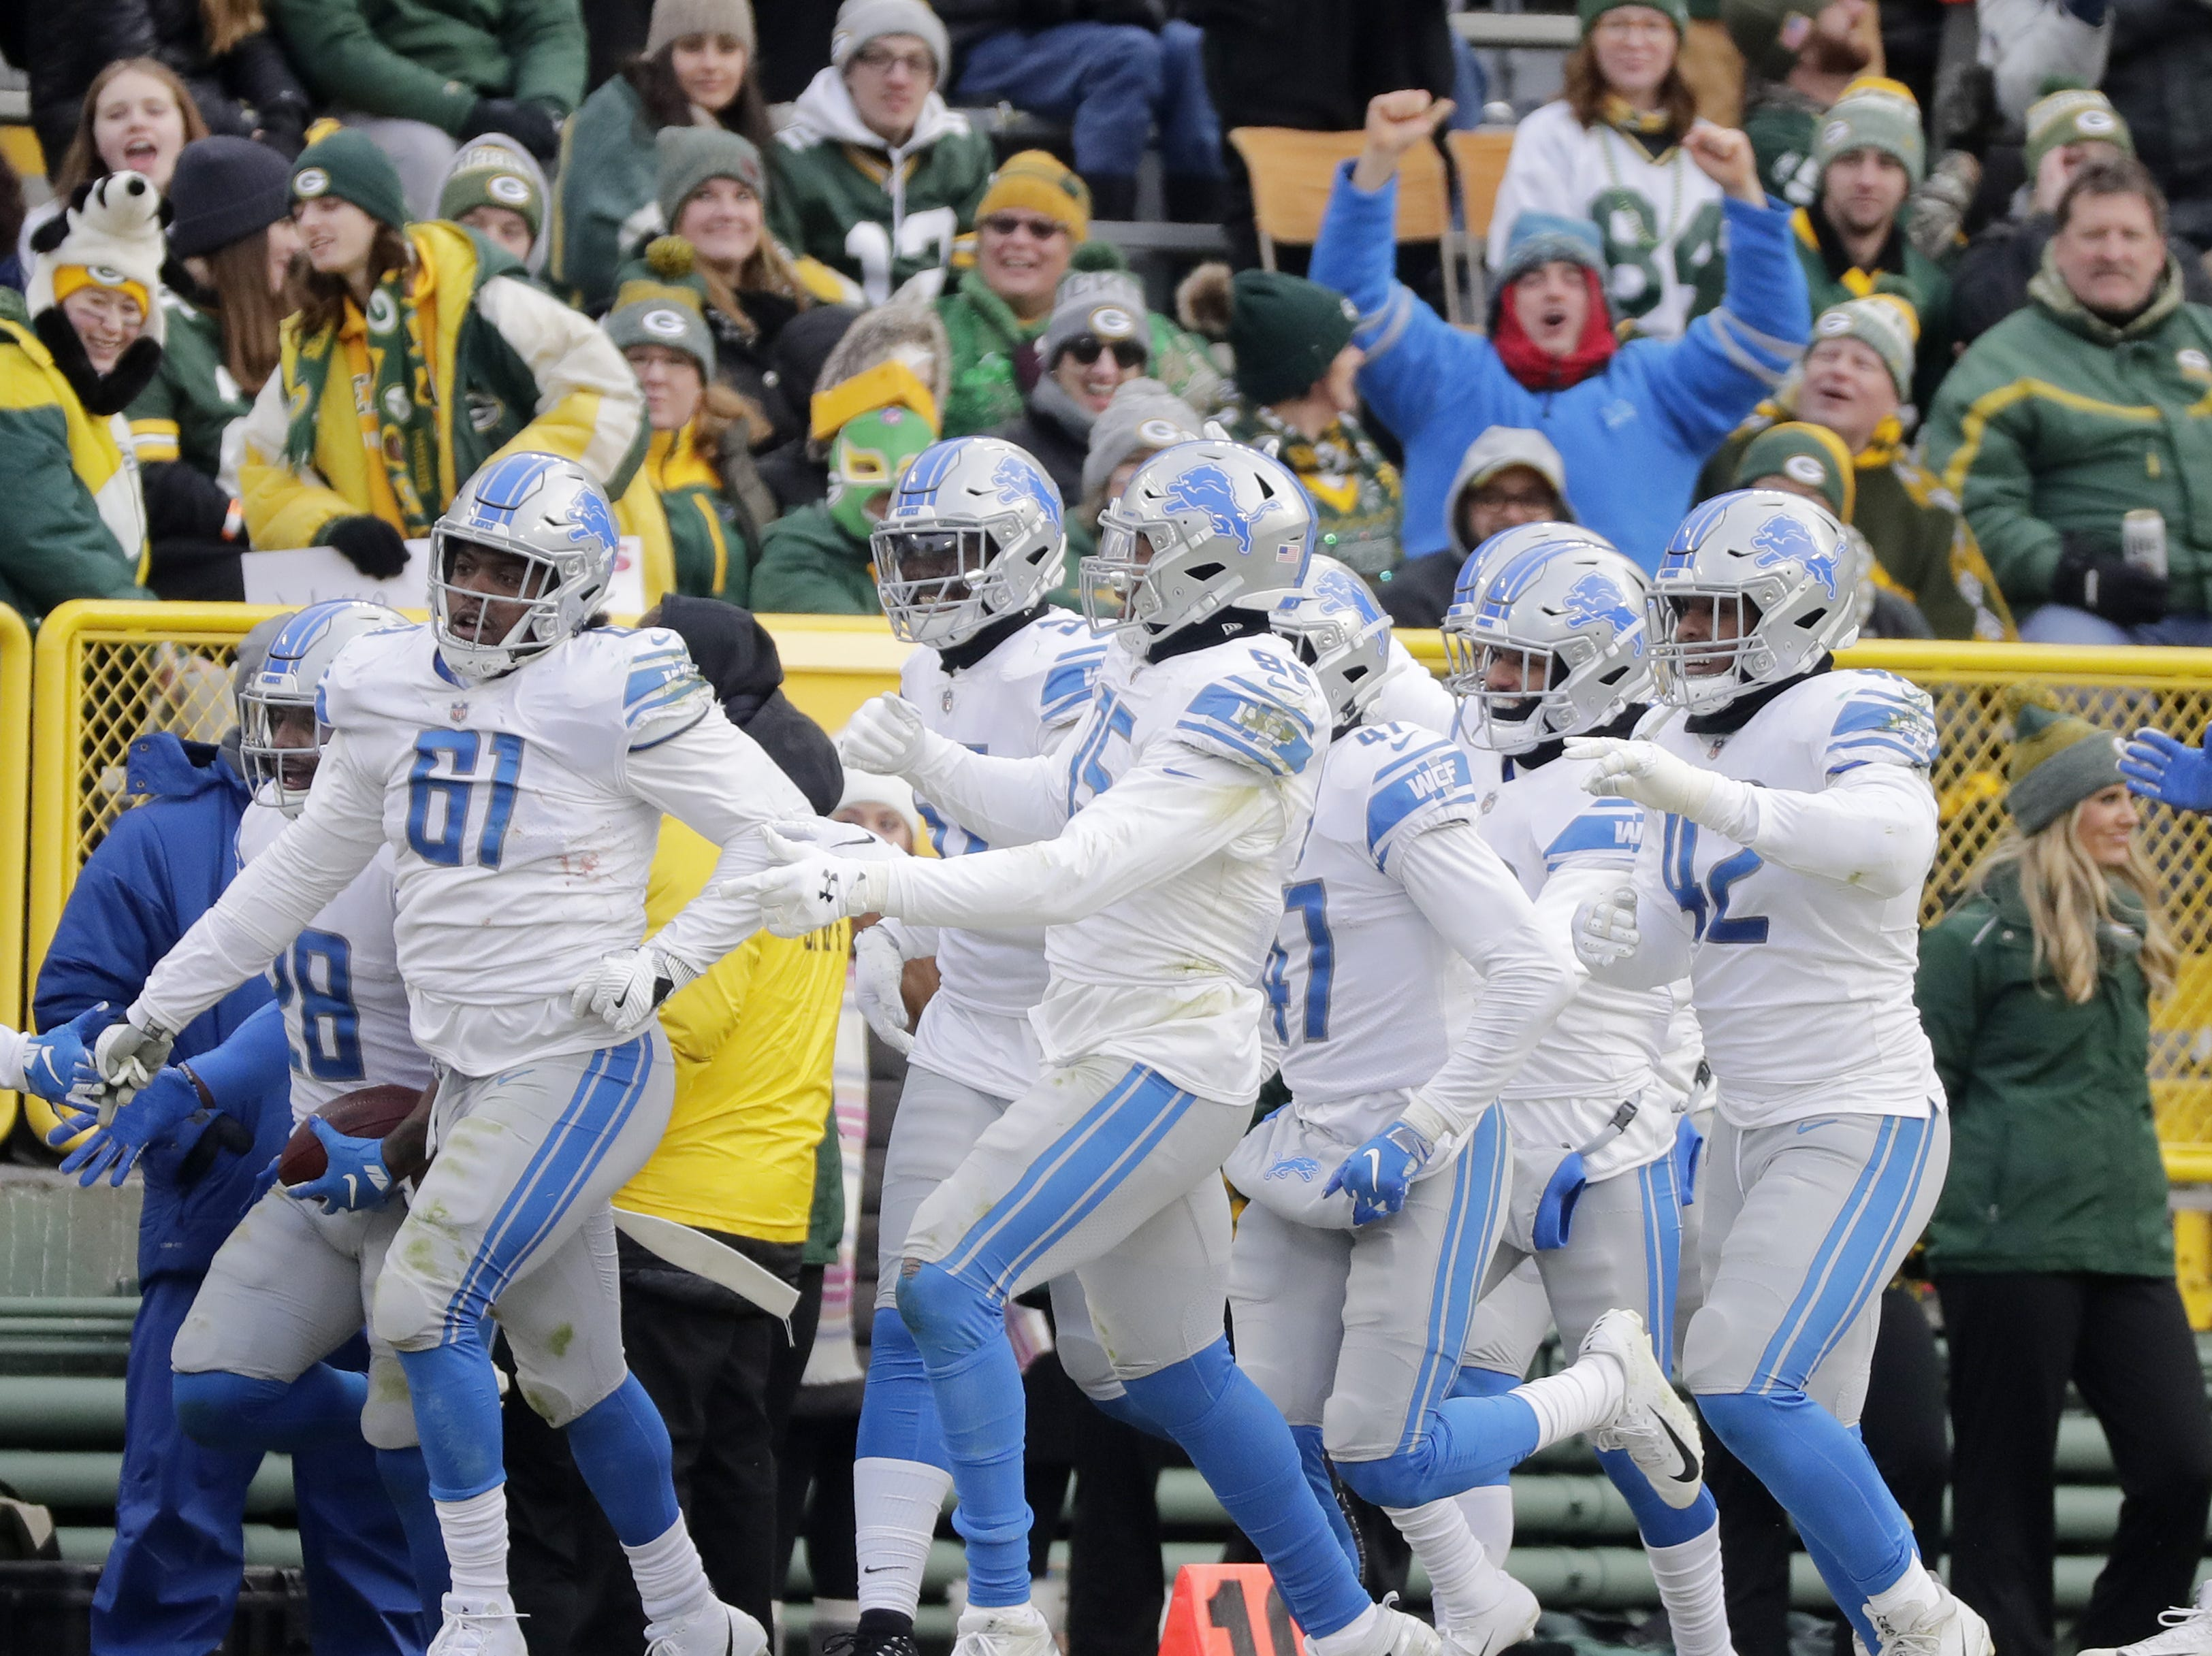 Detroit Lions players celebrate after an interception by Detroit Lions strong safety Quandre Diggs (28) in the fourth quarter at Lambeau Field on Sunday, December 30, 2018 in Green Bay, Wis. Adam Wesley/USA TODAY NETWORK-Wis